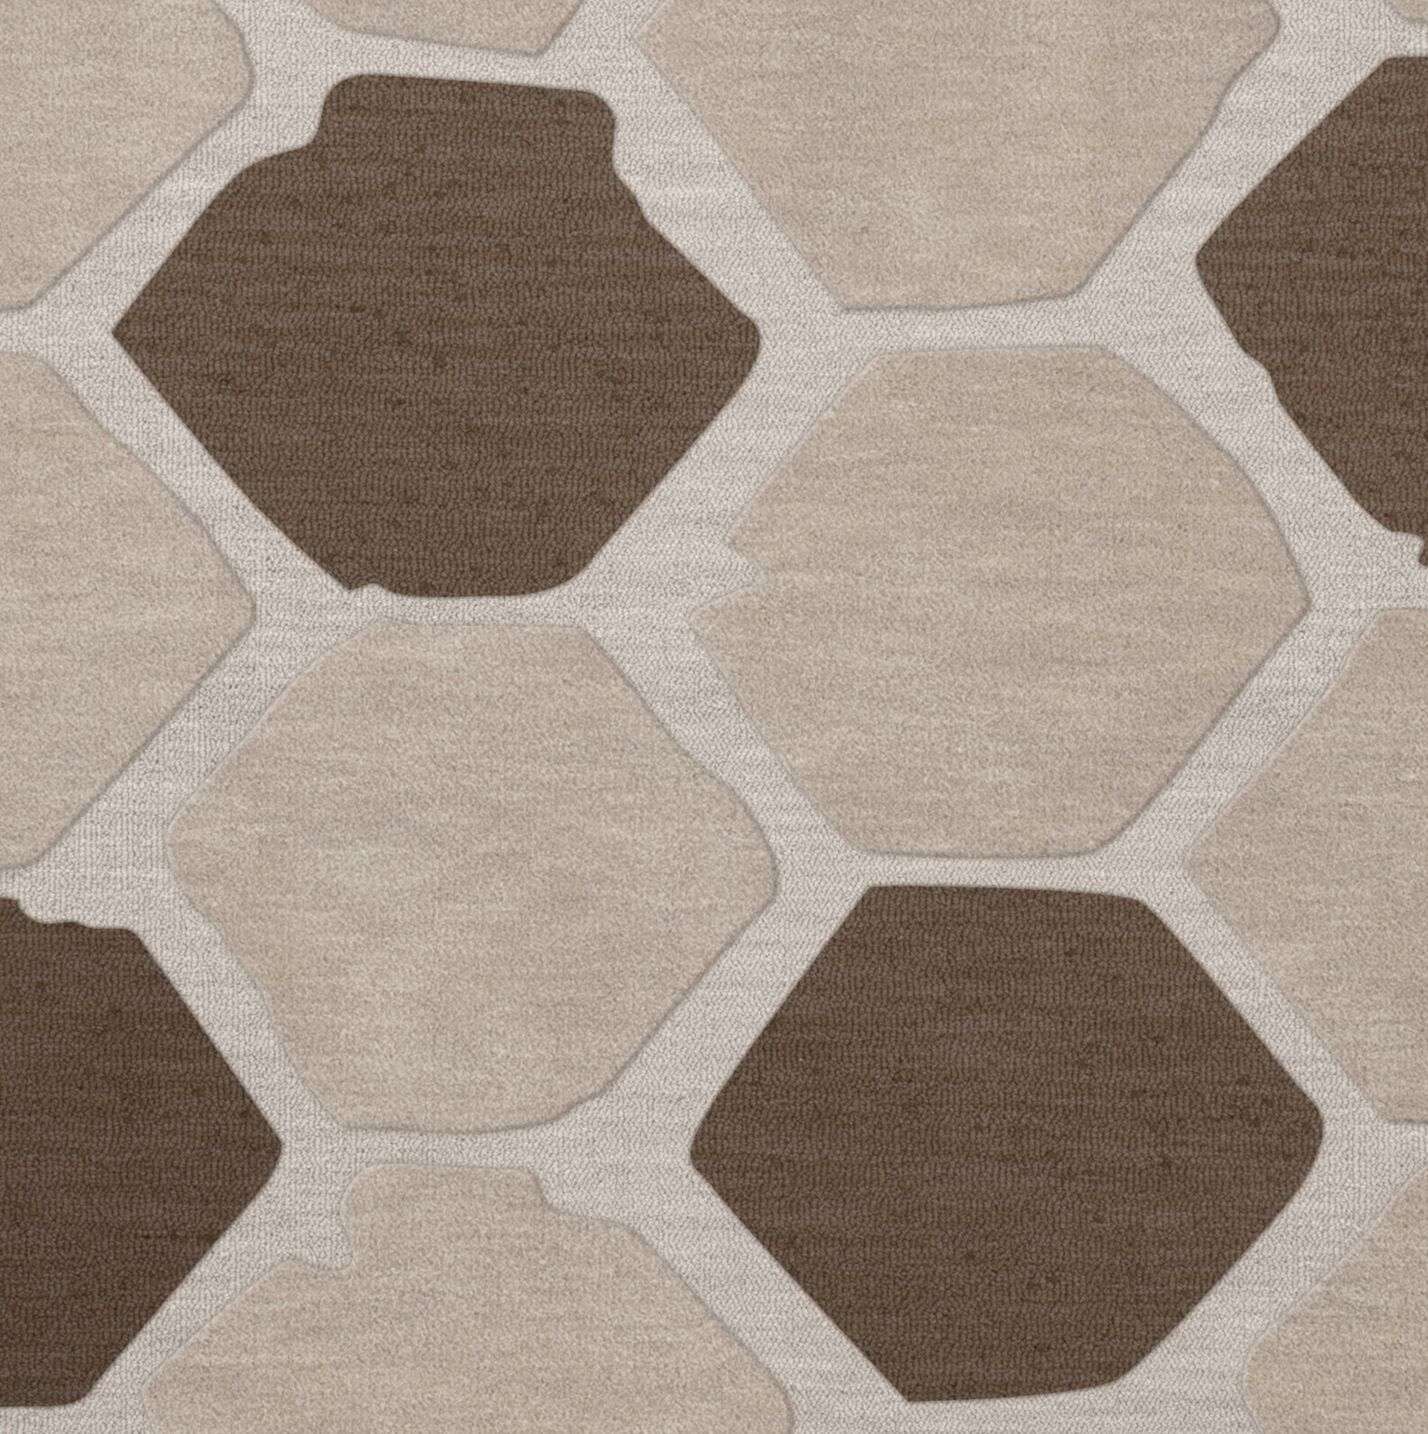 Dunson Wool Croissant Area Rug Rug Size: Square 10'